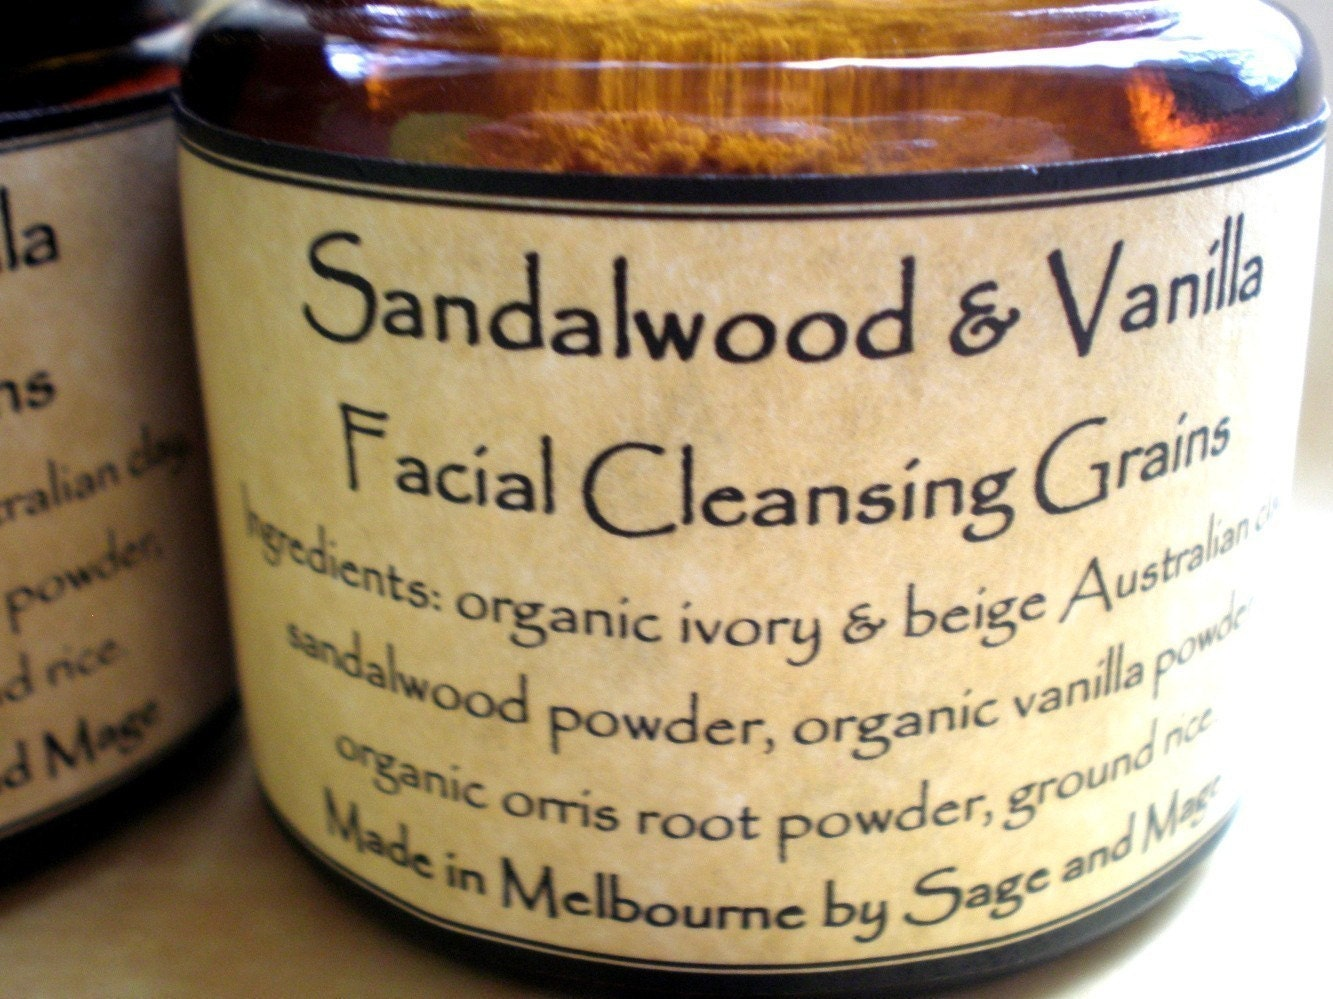 SANDALWOOD and VANILLA - facial cleansing grains - all natural, vegan